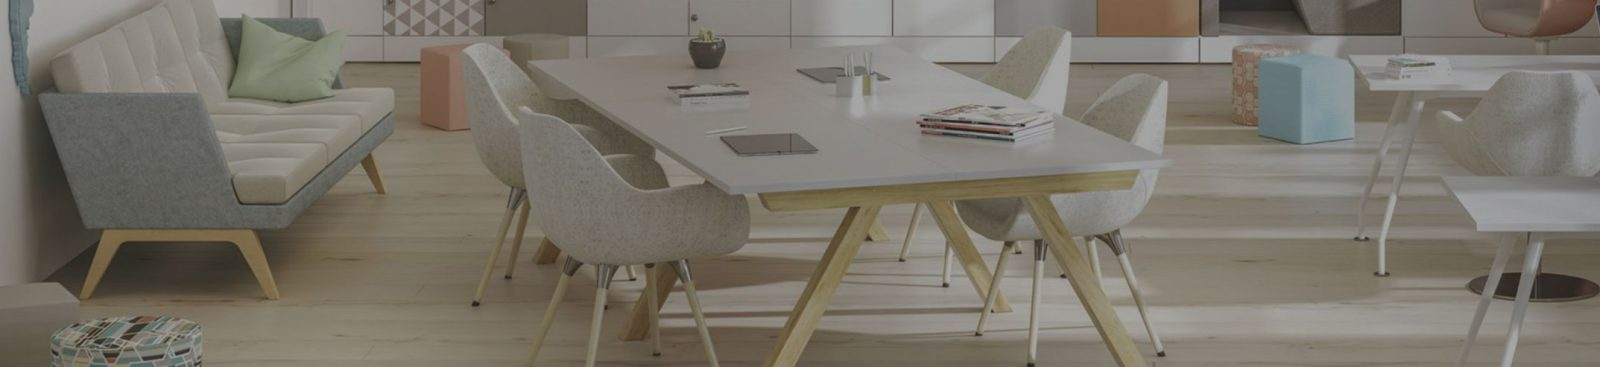 Maximising the effectiveness of your meeting areas image